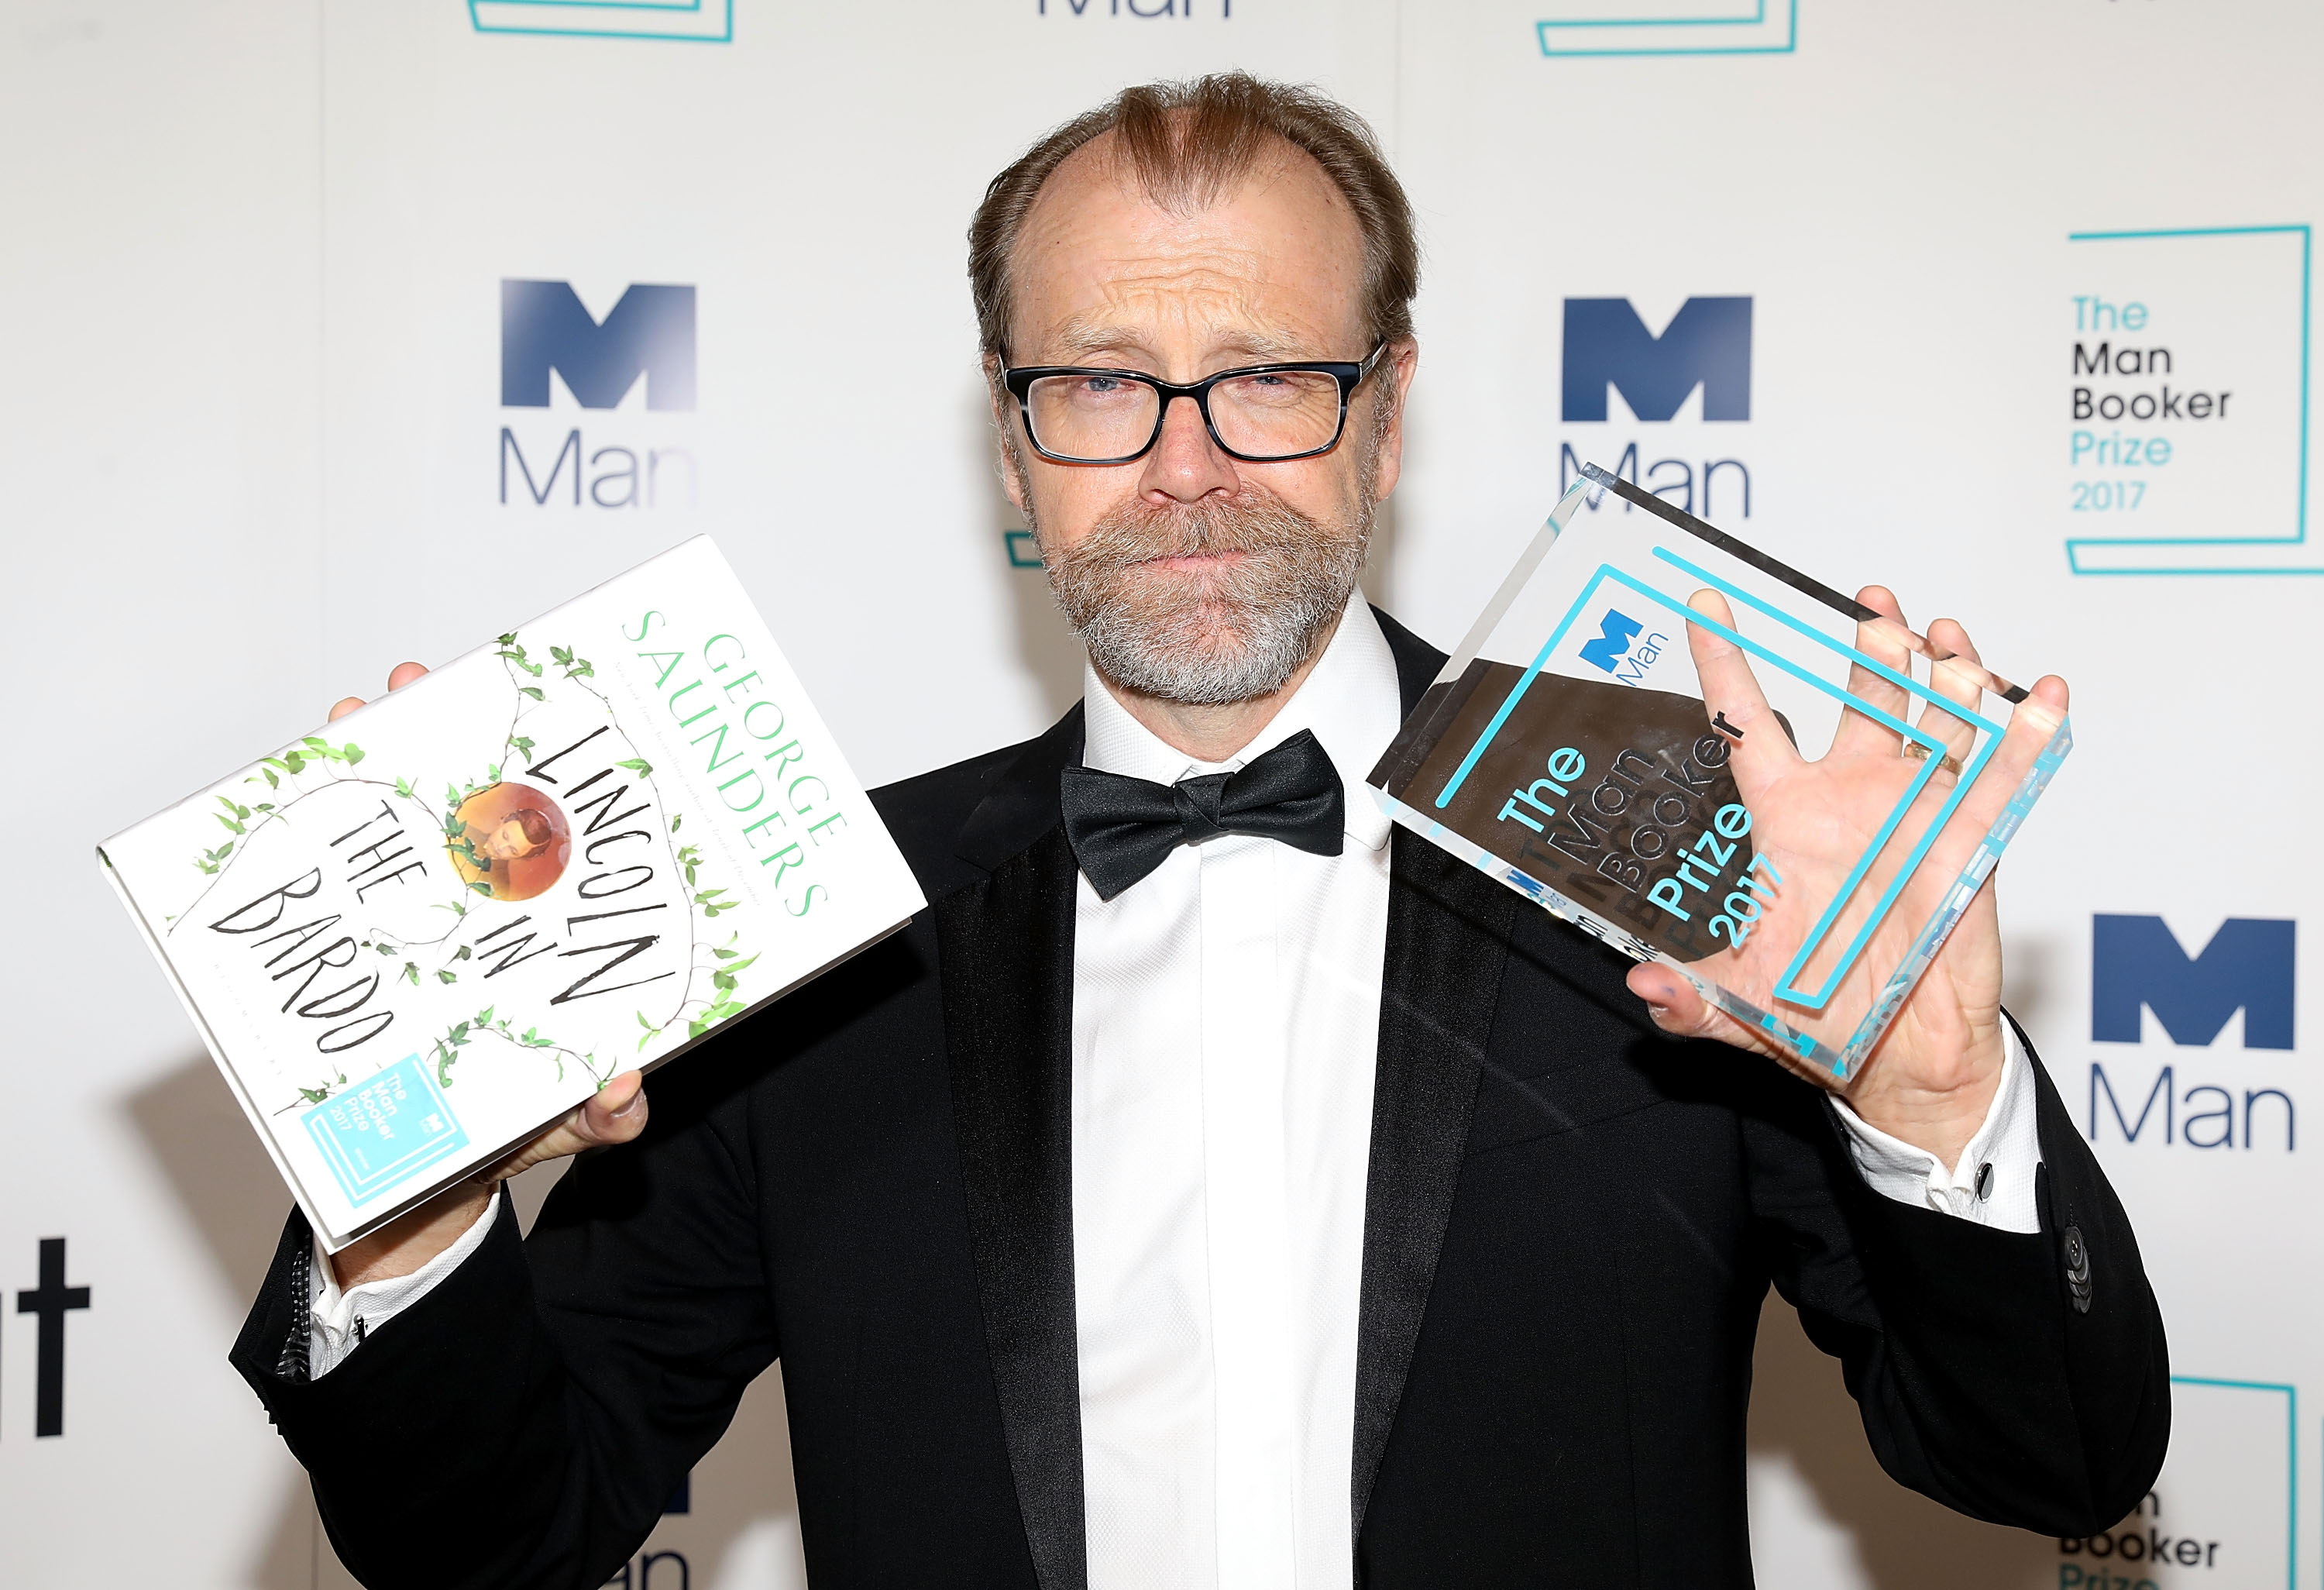 Winning author George Saunders during the Man Booker Prize winner announcement photocall at The Guildhall on October 17, 2017 in London, England.